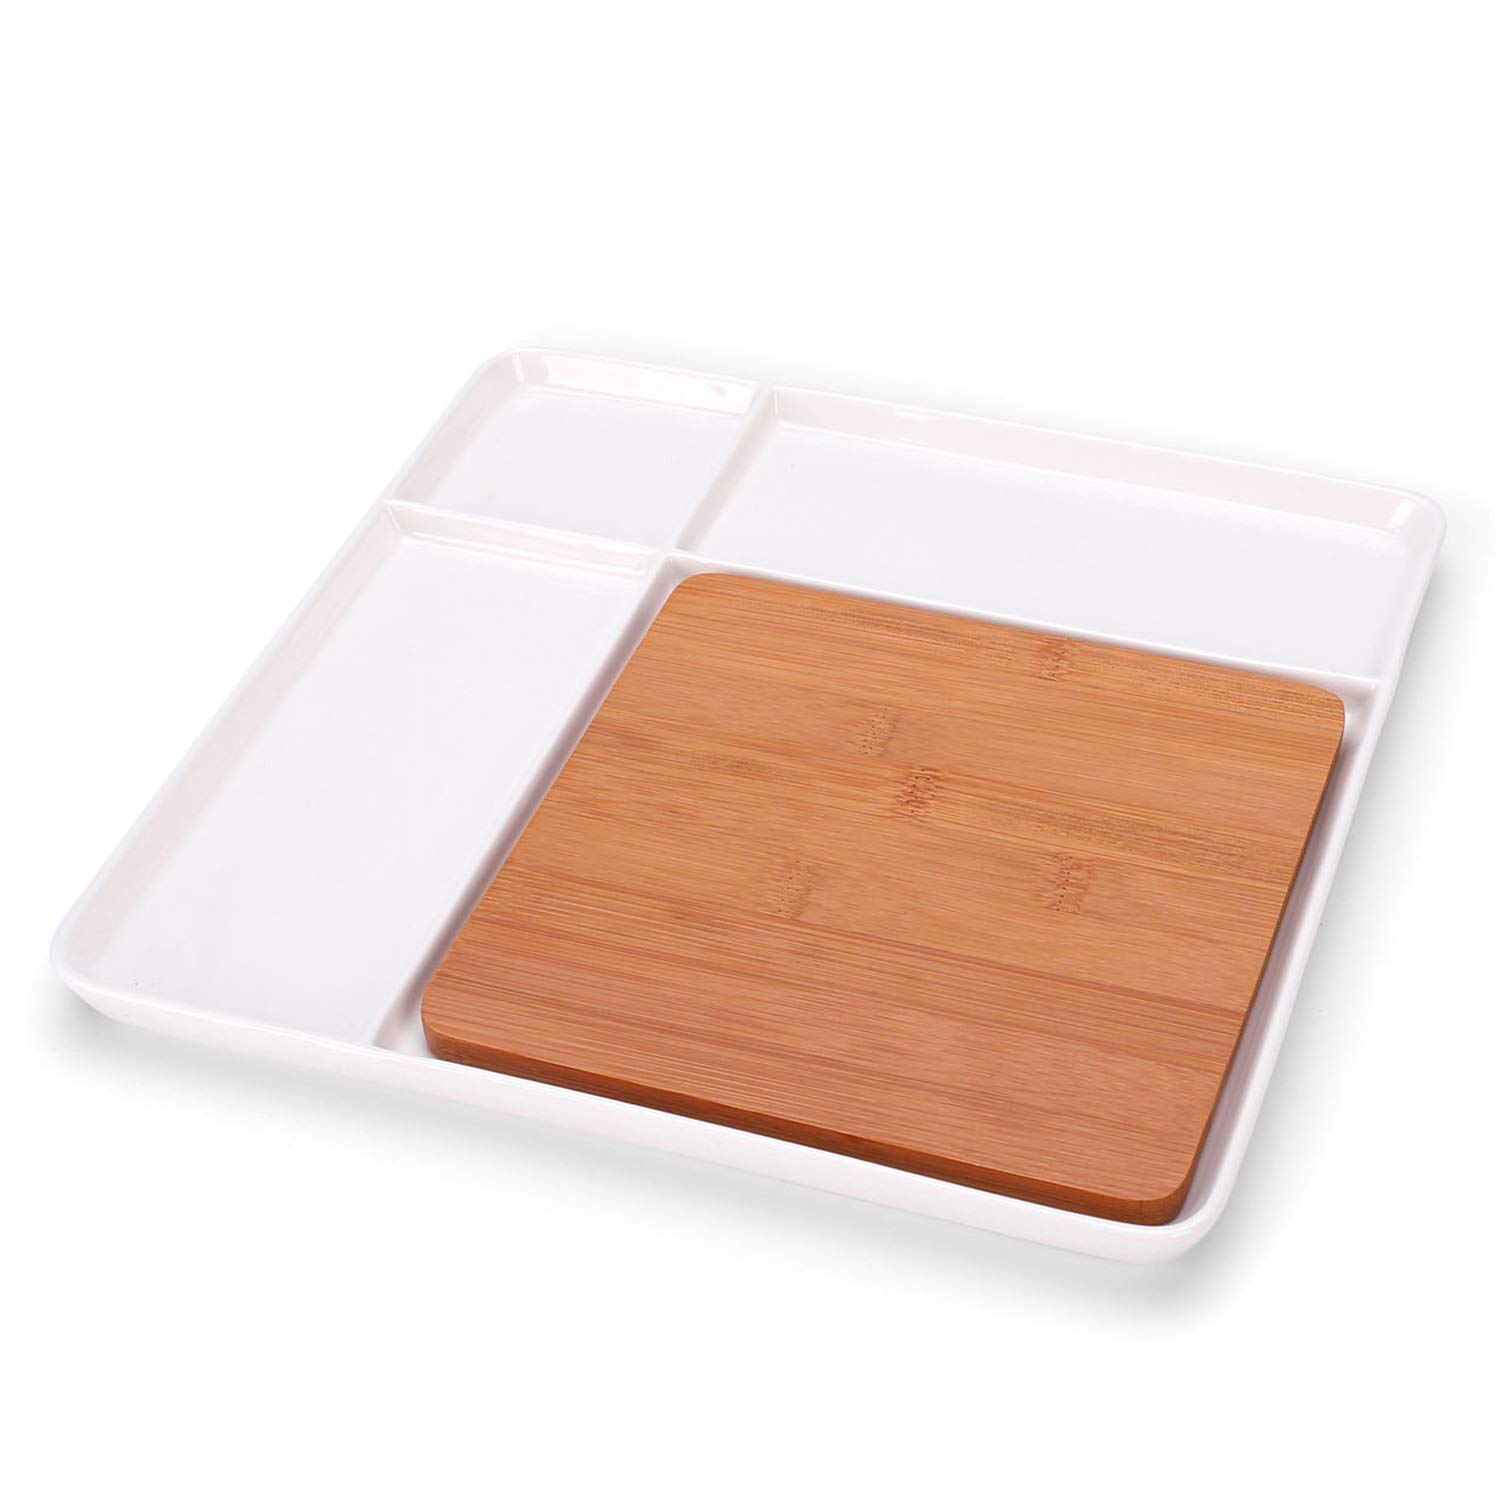 Ceramic Divided Plate with Bamboo Cutting Board - Cheese Board Salad Plate Dinner Plate Cake Plate - Gift Idea - Great Use as Any Occasion (White) One Goods